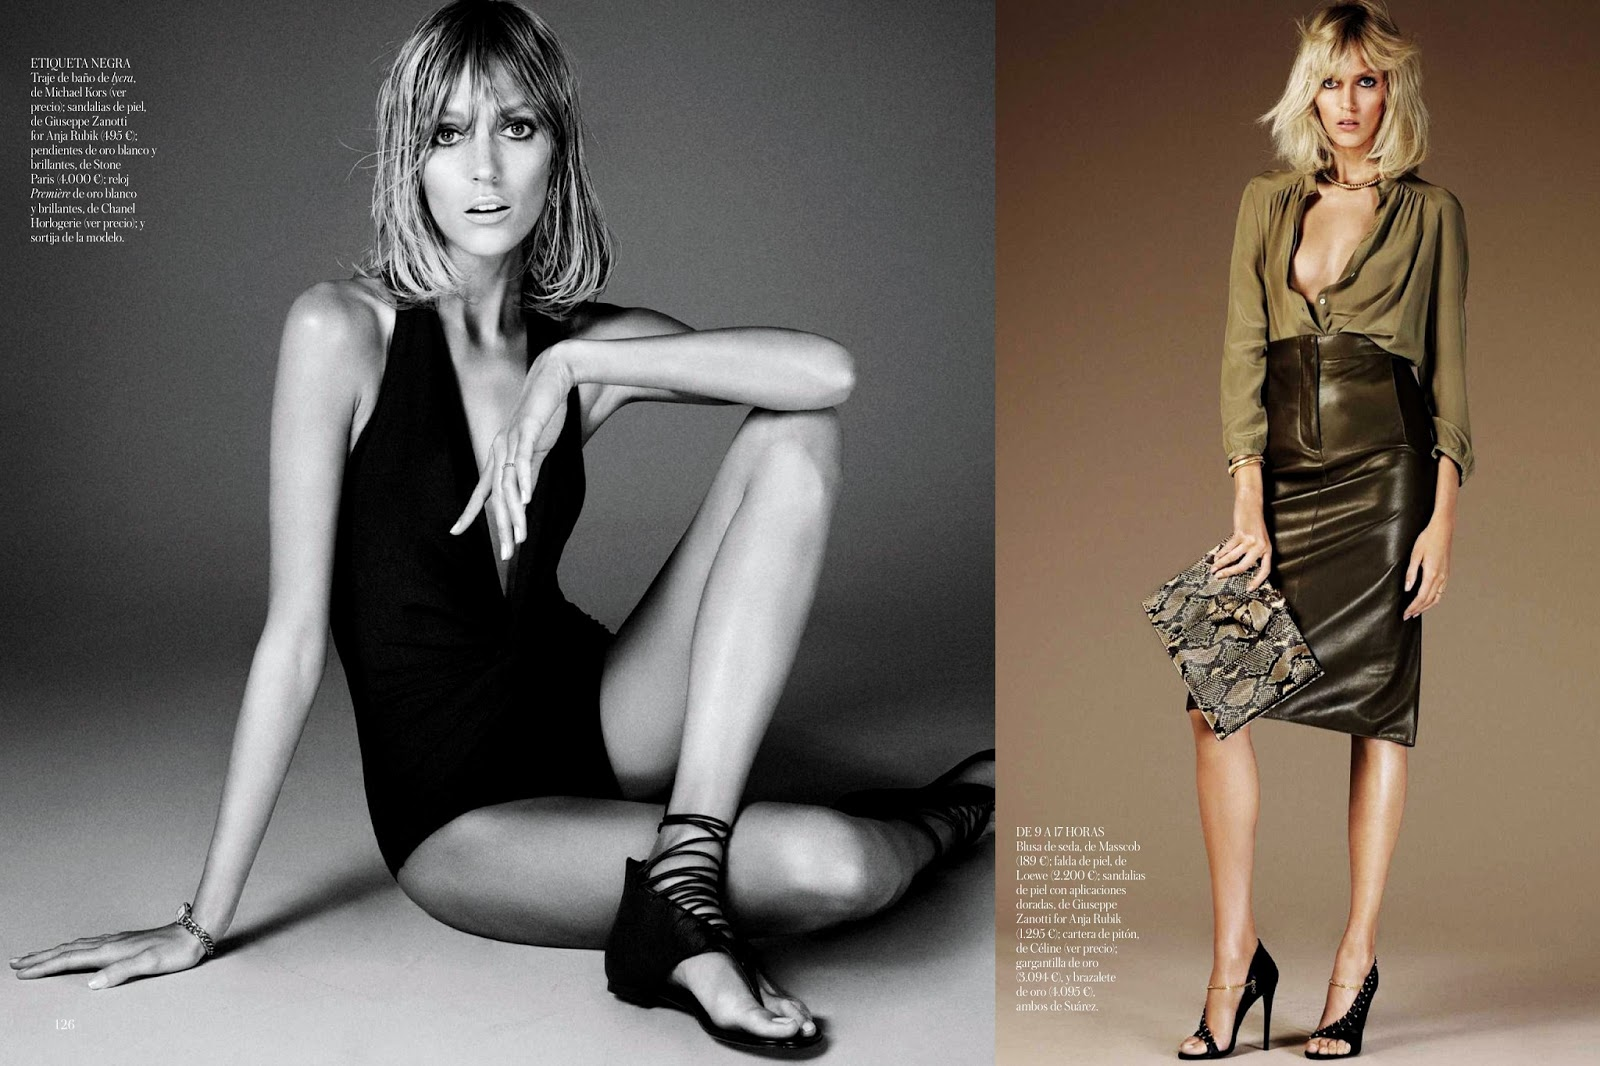 fashion_scans_remastered-anja_rubik-vogue_espana-june_2013-scanned_by_vampirehorde-hq-10.jpg